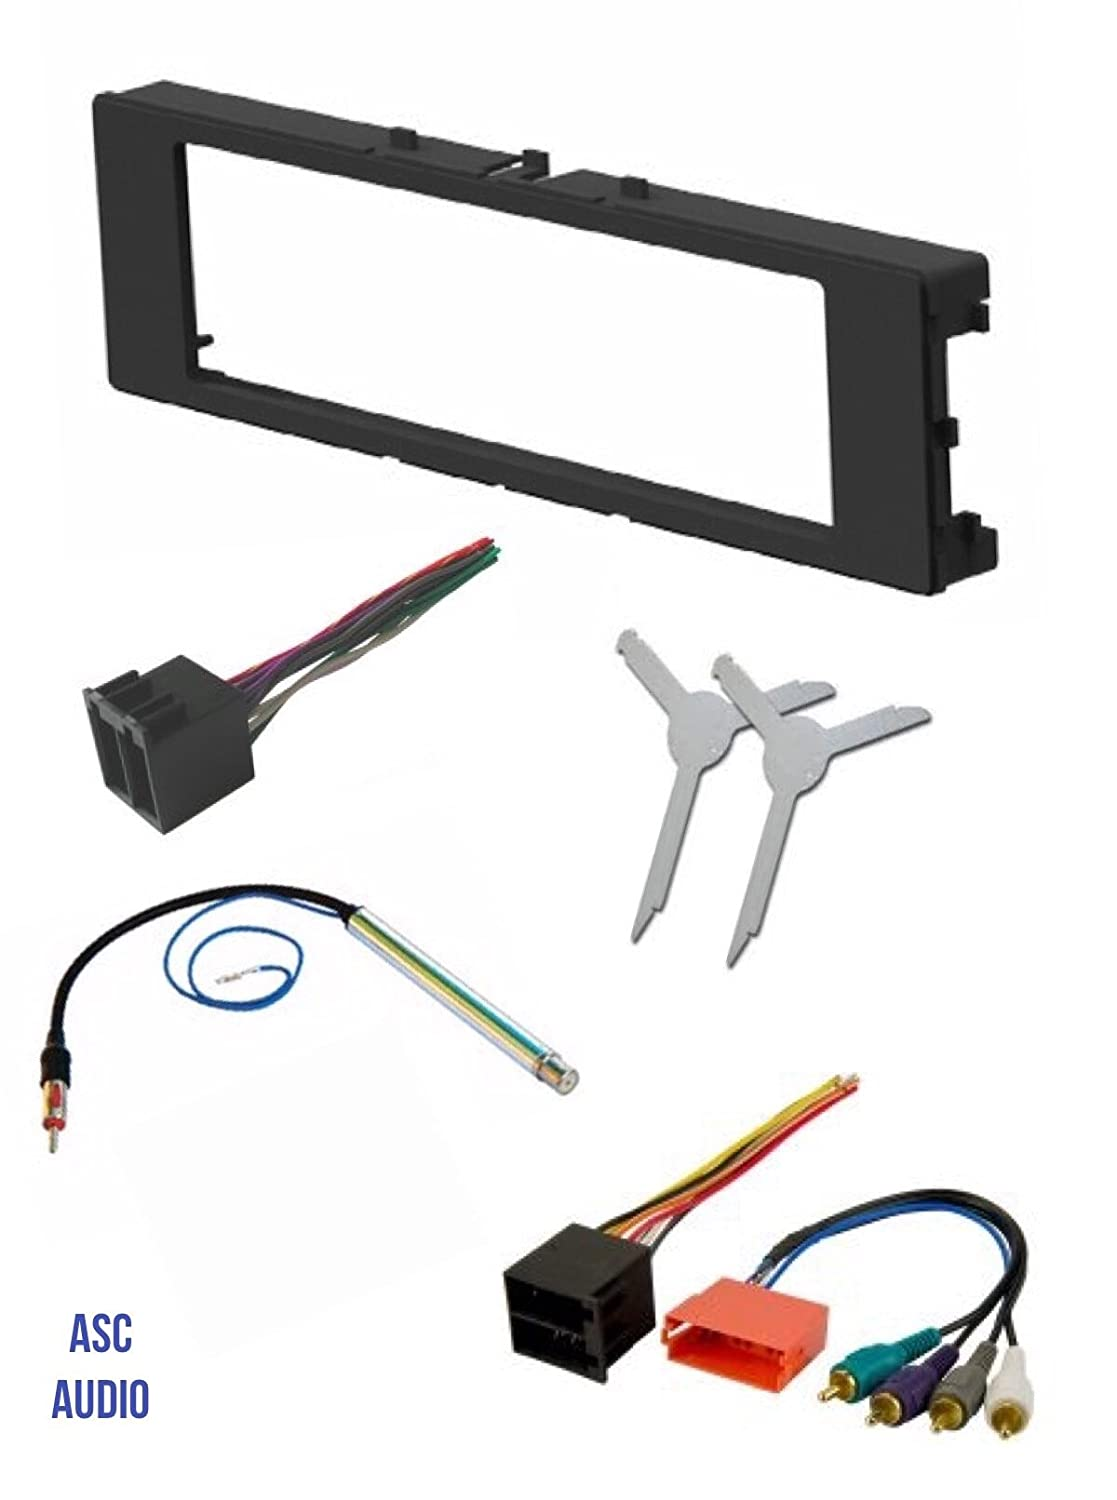 asc car stereo install dash kit, wire harness, antenna adapter, and radio  removal tool for installing an aftermarket single din radio for 1996-1999  audi a4